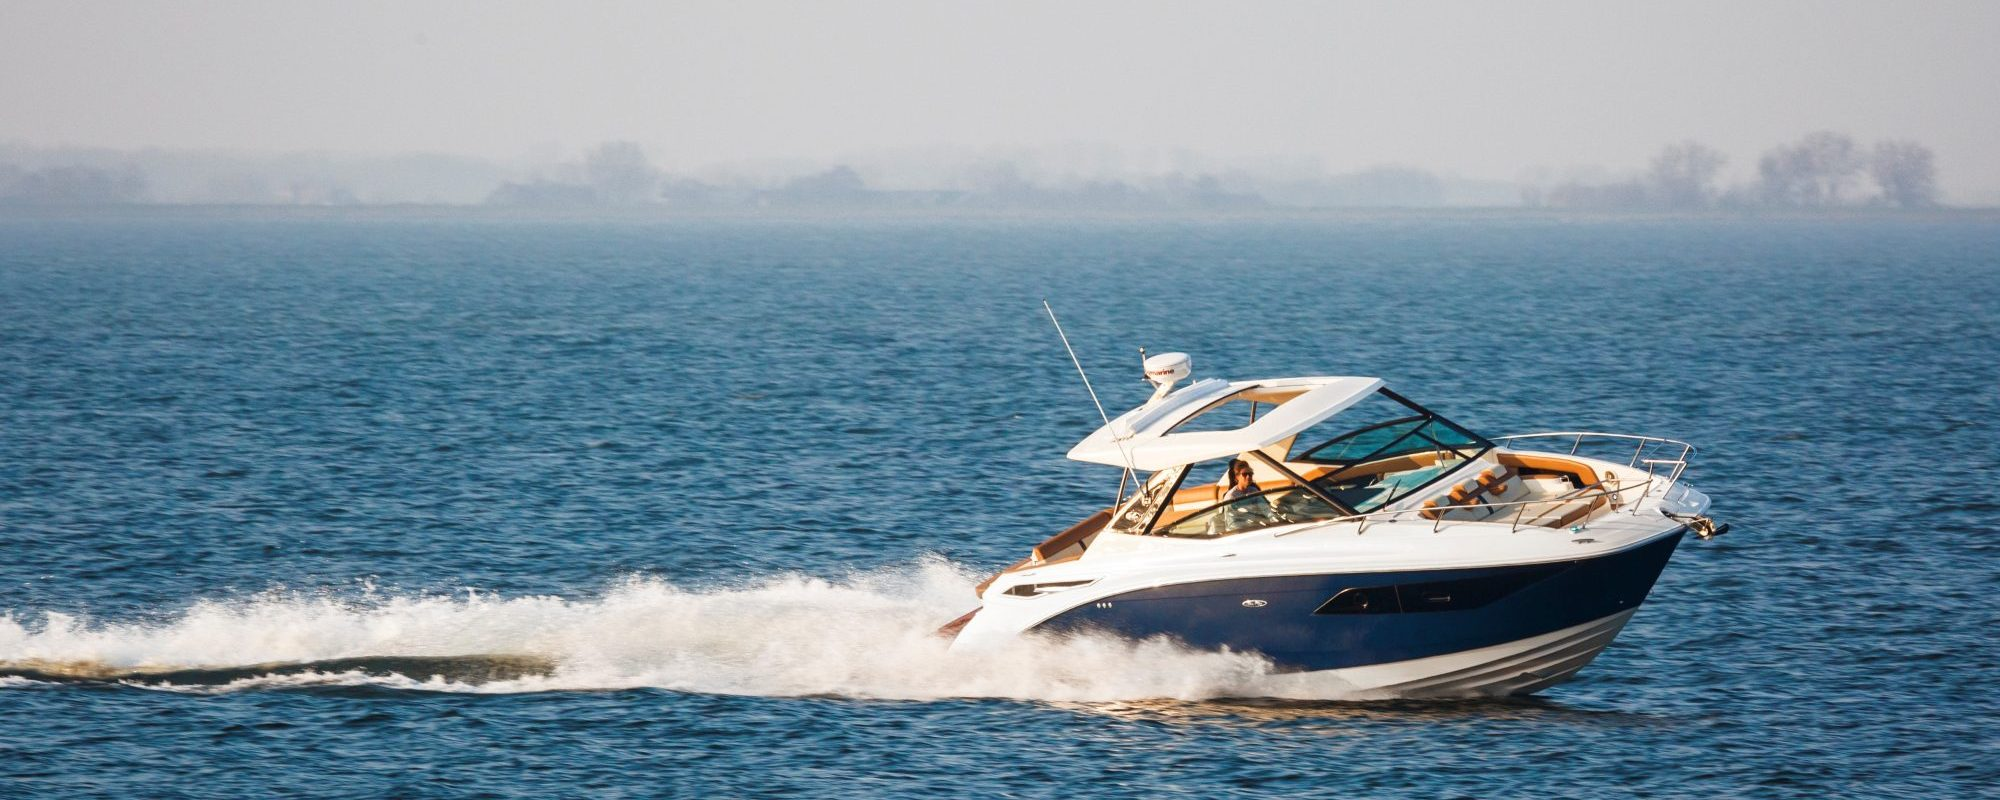 Sea Ray 320 Sundancer, used power boats for sale in florida